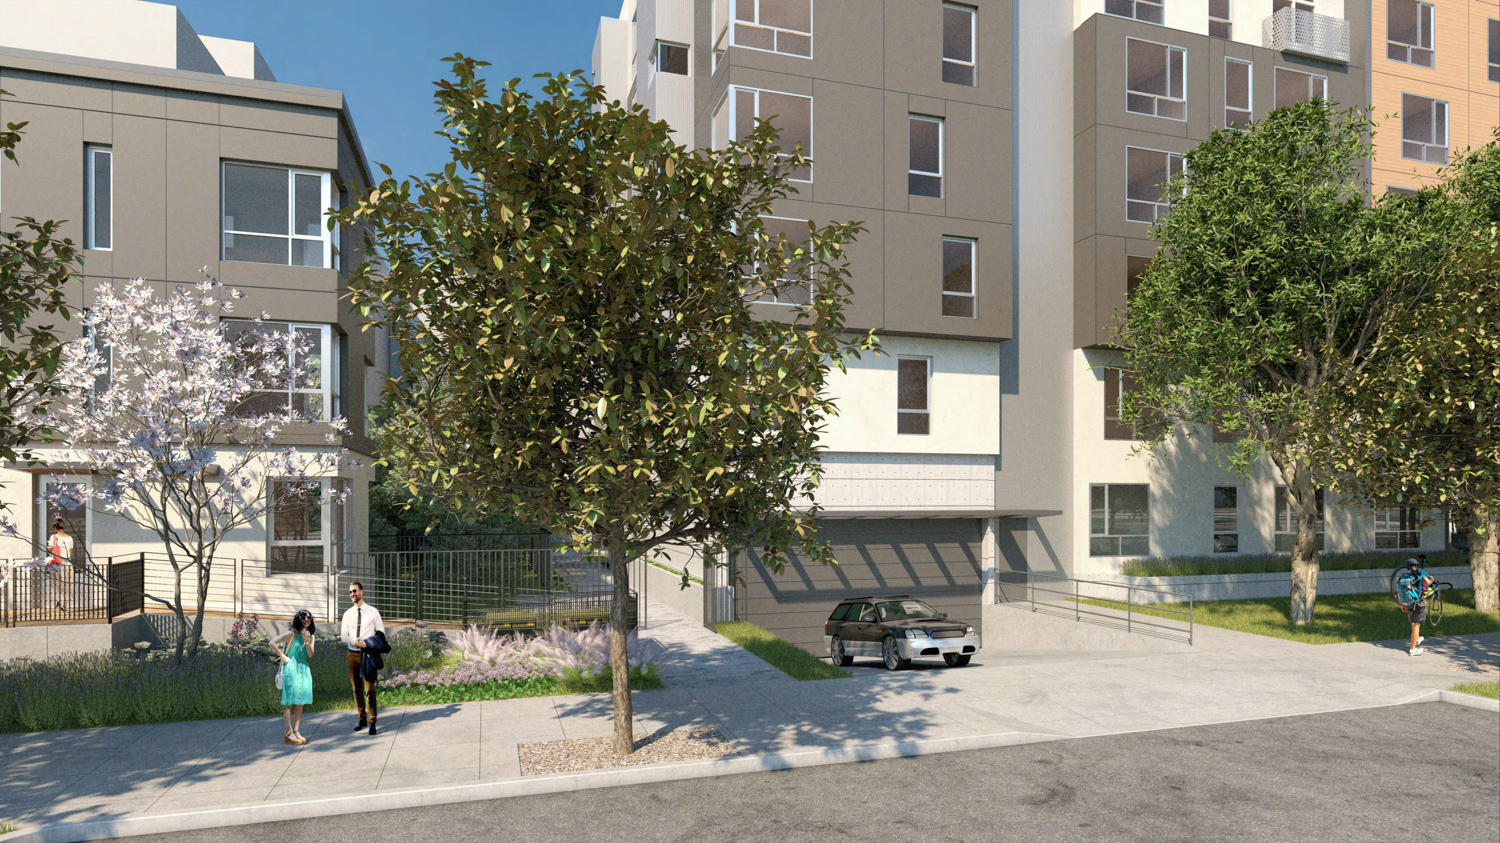 2015 Blake Street garage and landscaping, rendering courtesy Lowney Architects